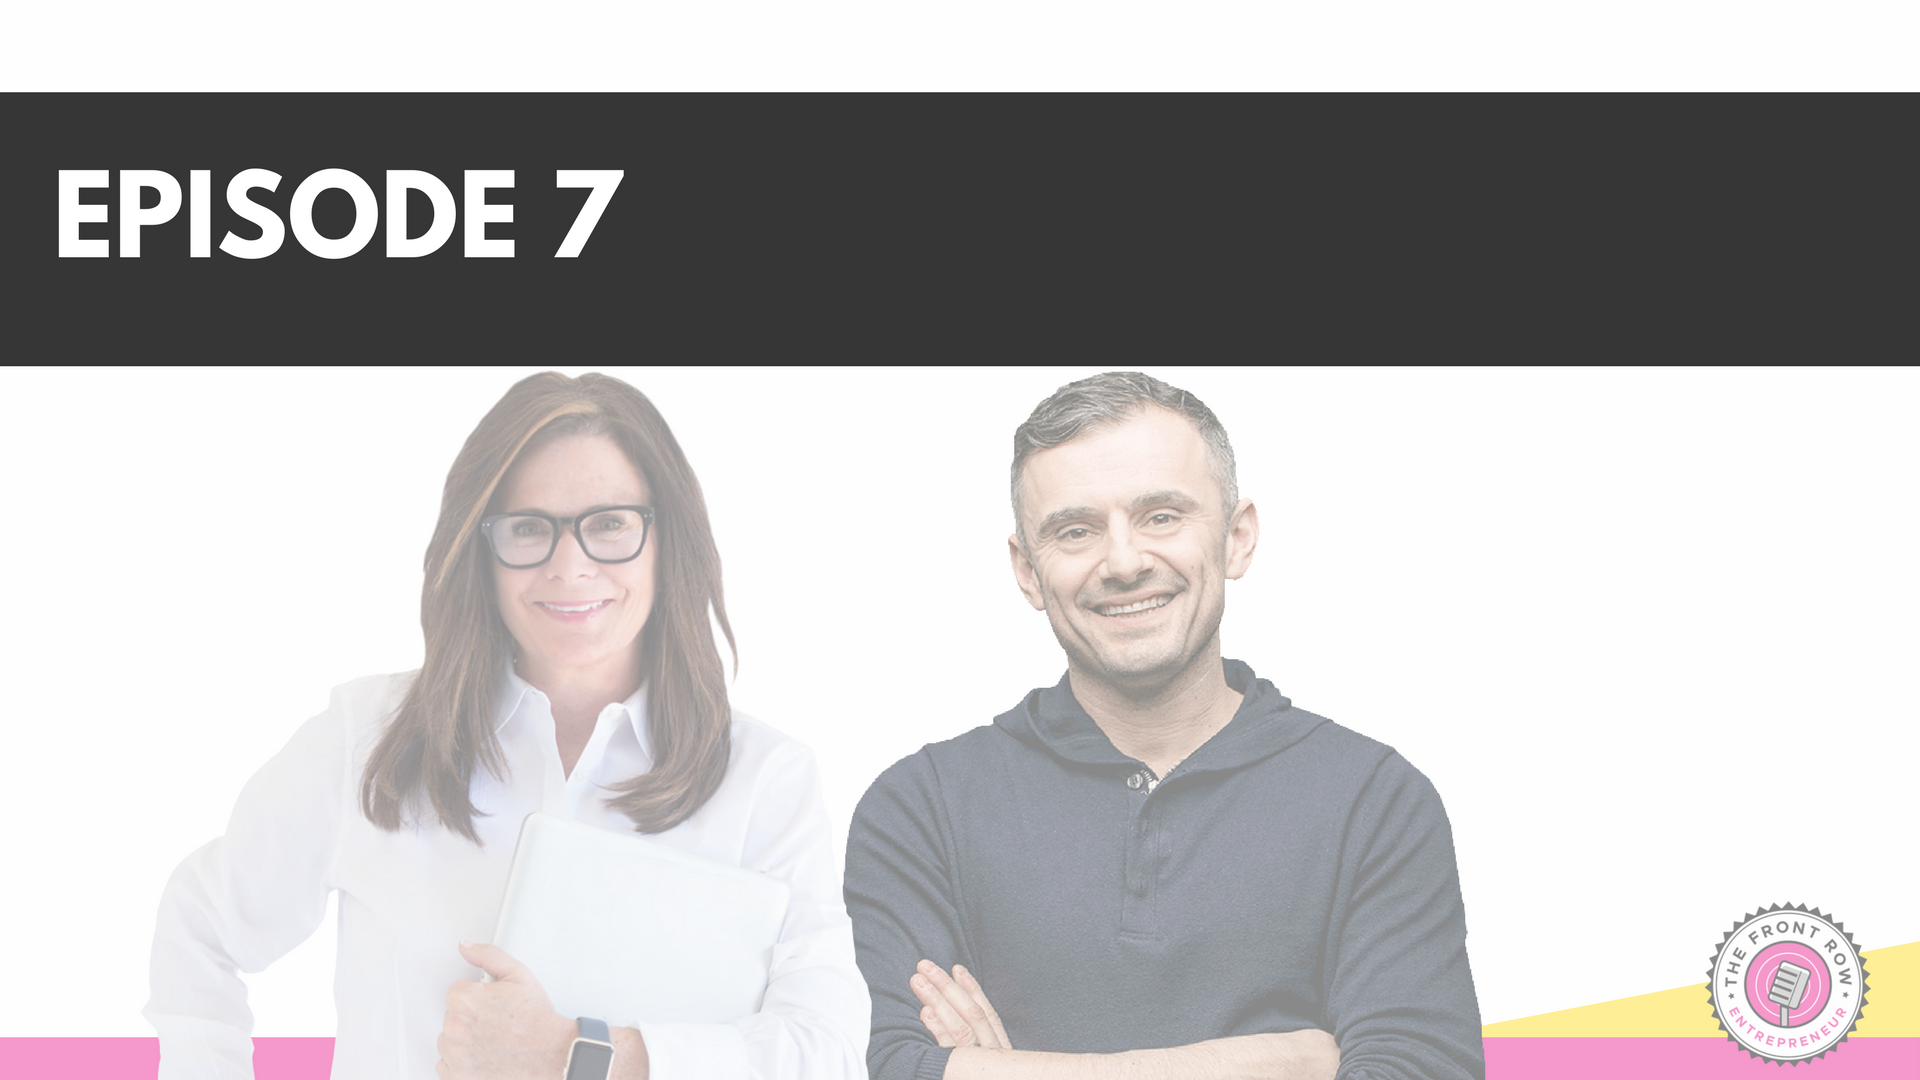 Gary Vaynerchuck - Gary Vaynerchuck is all about hustle and grind...or is he? In this episode, you'll see another side of Garyvee. He talks about creating a